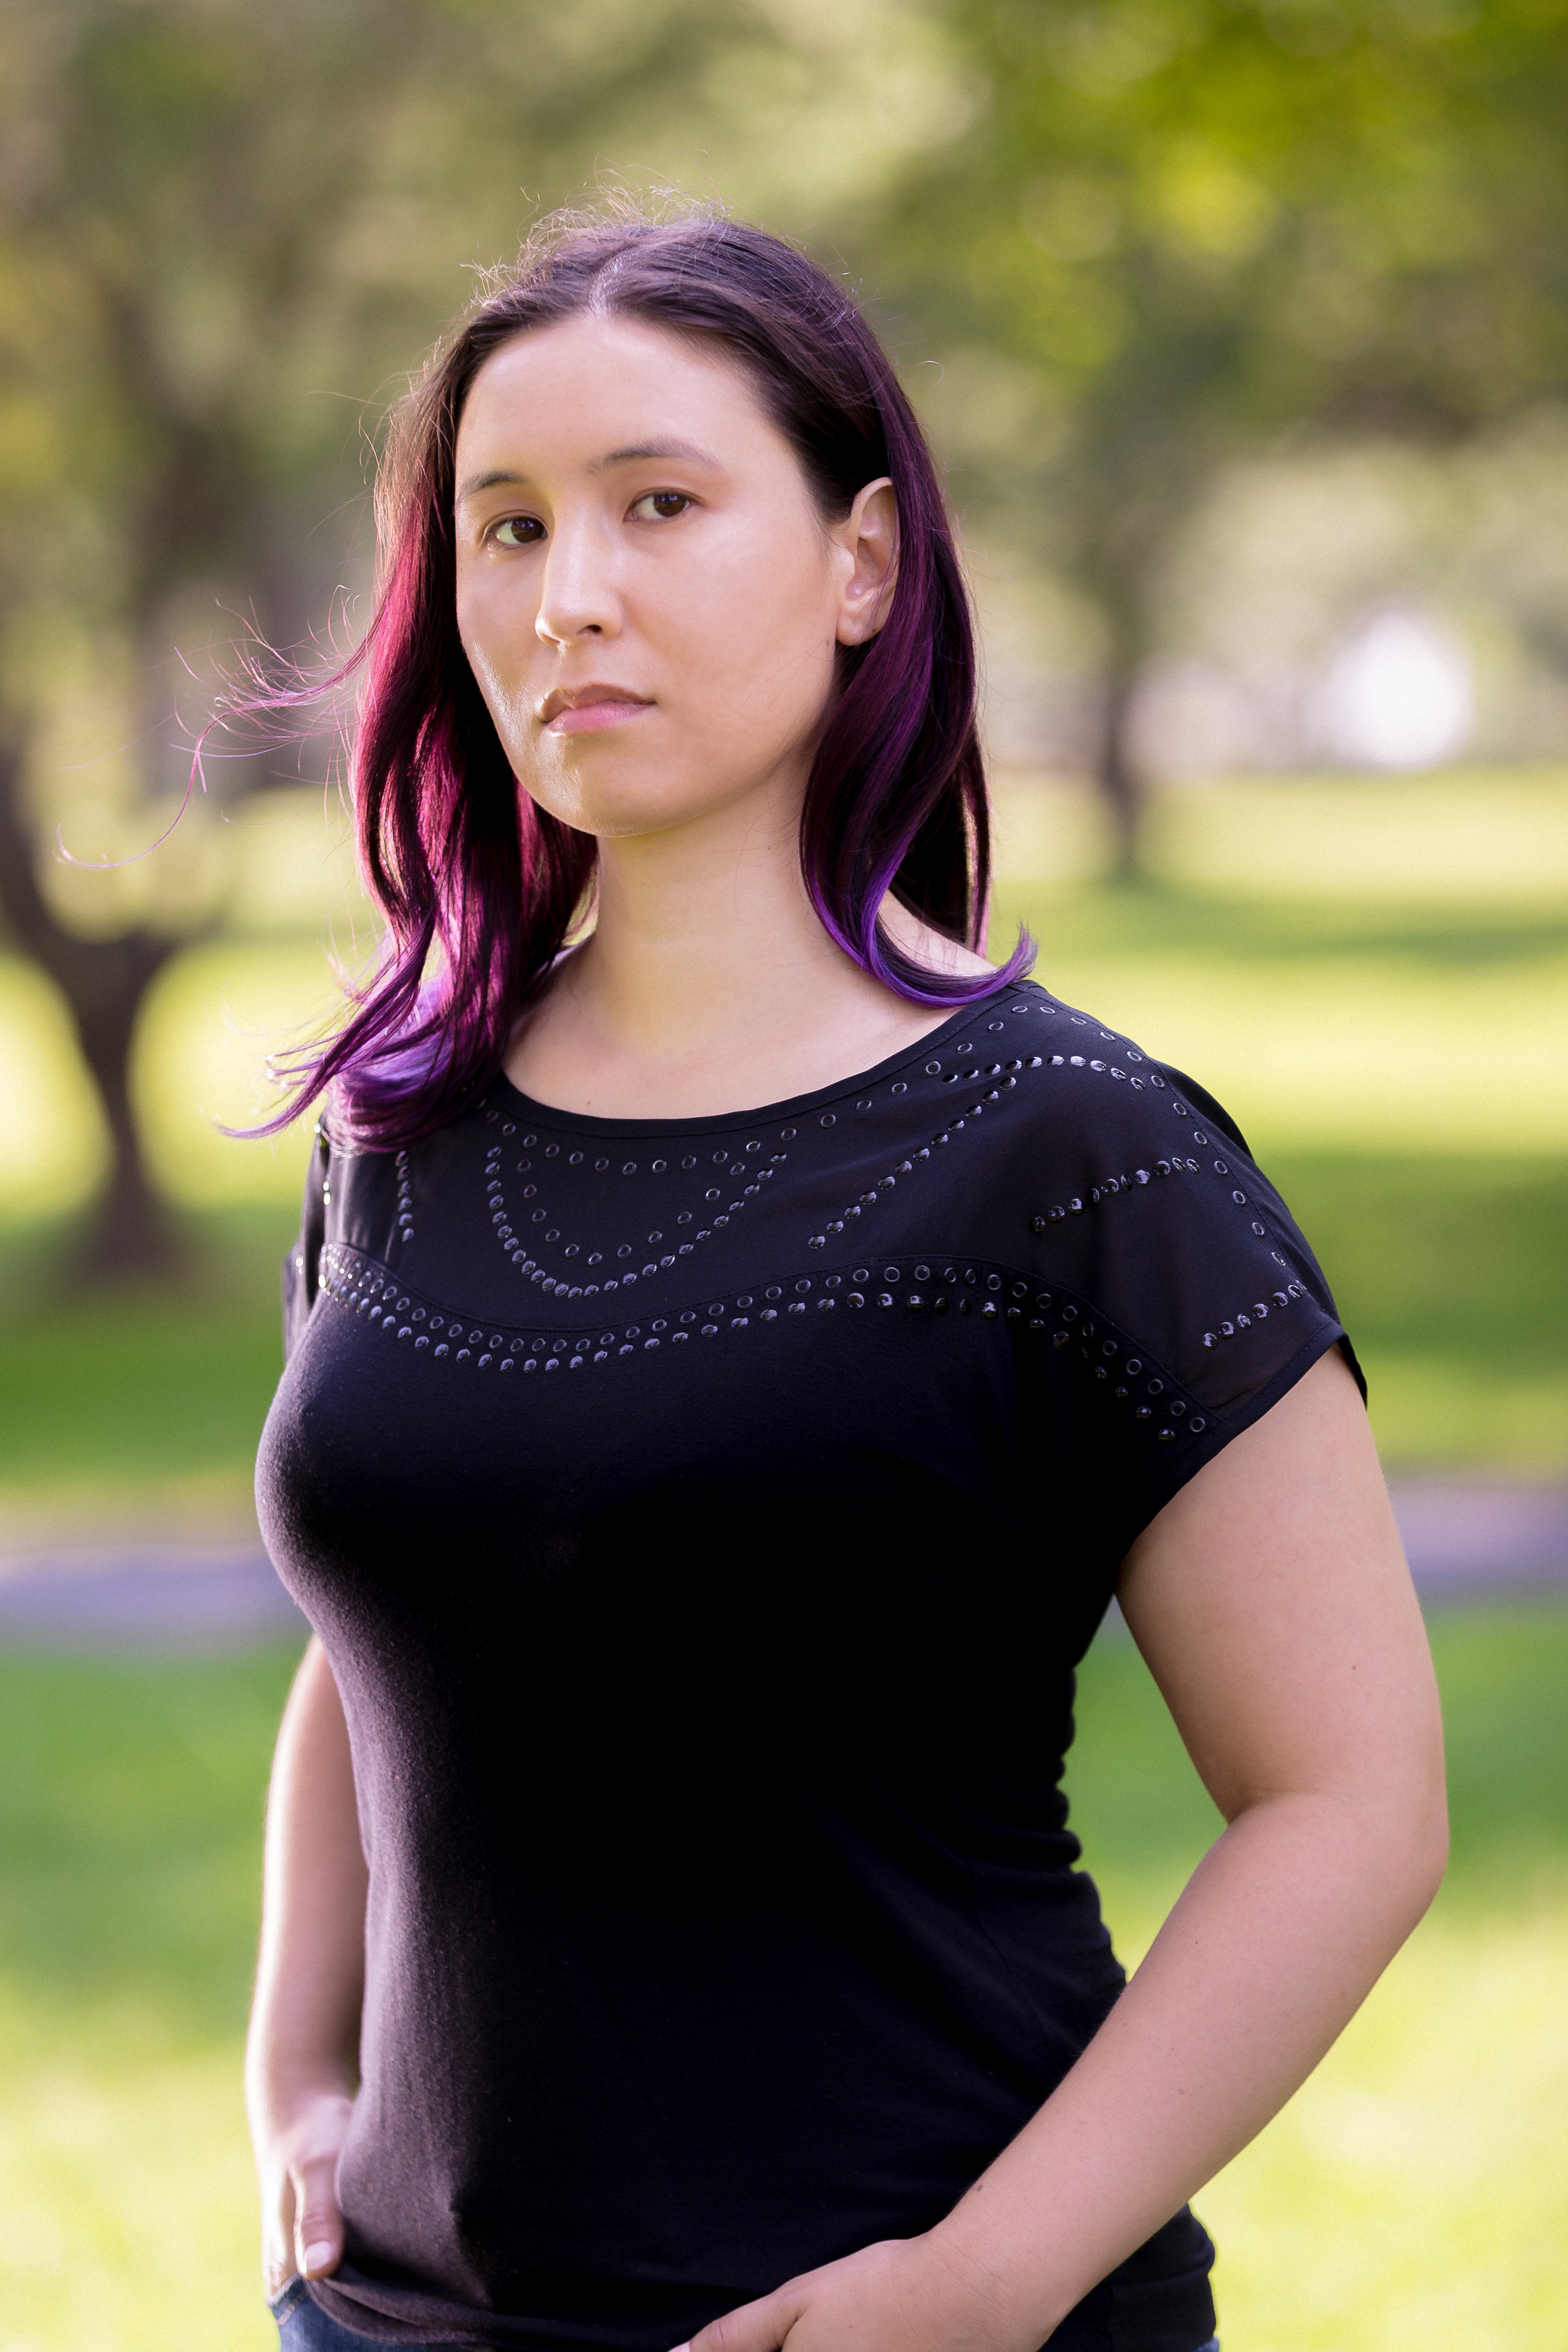 Rebecca Kim Wells Author Photo Final.jpg